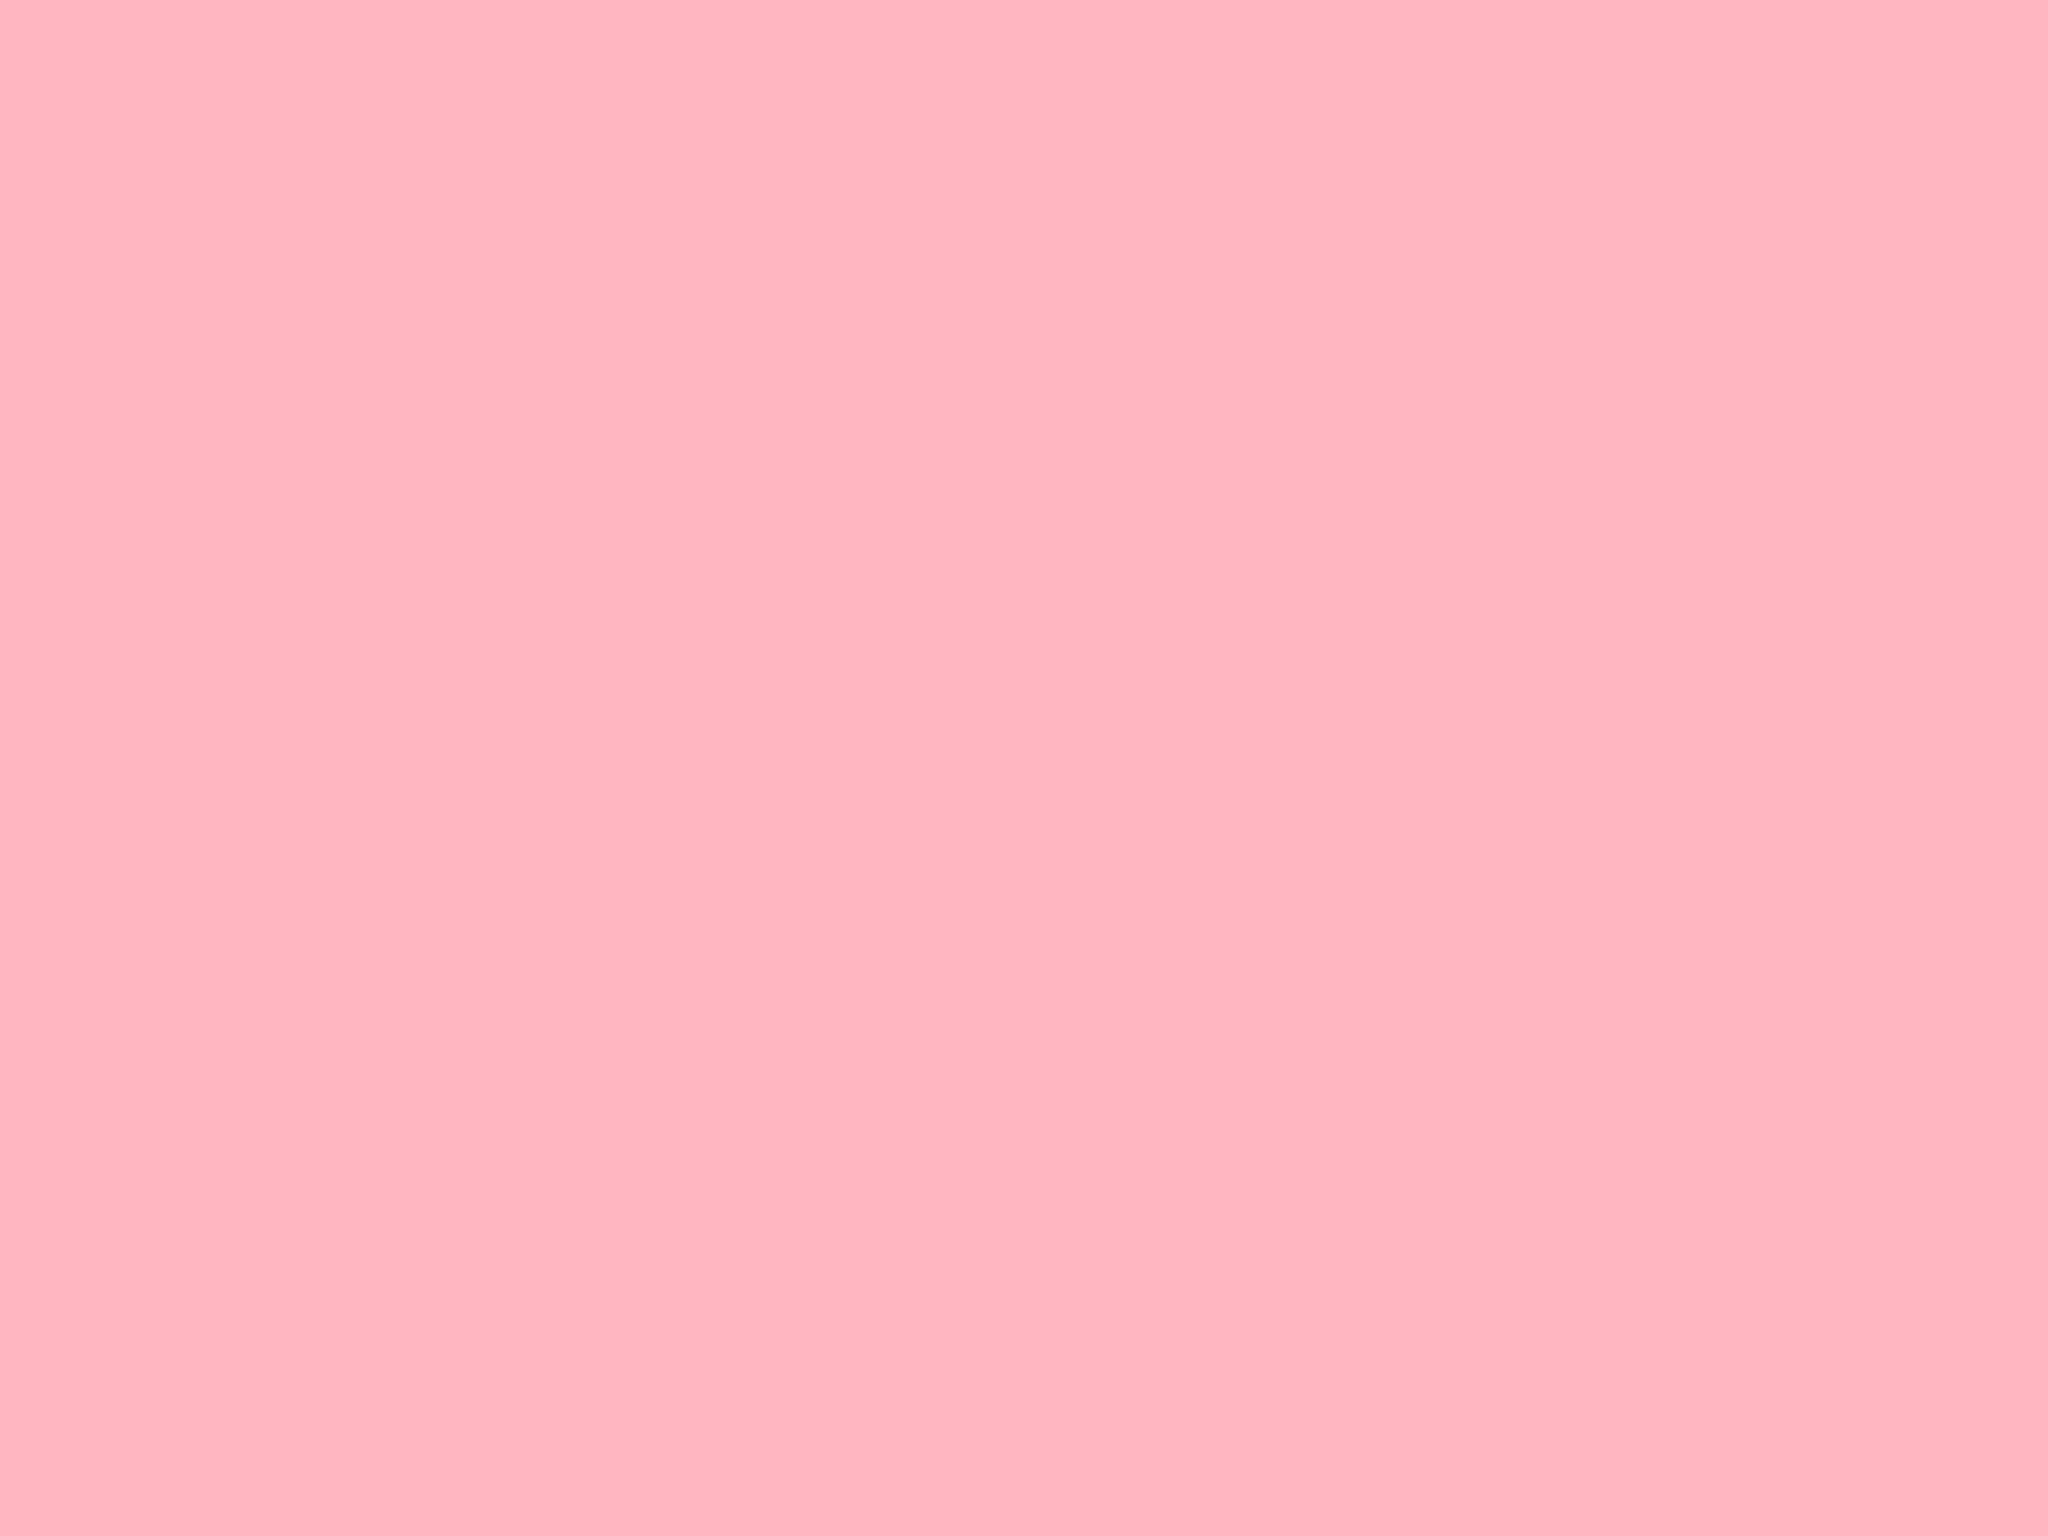 Solid Pale Pink Background light pink solid #8294